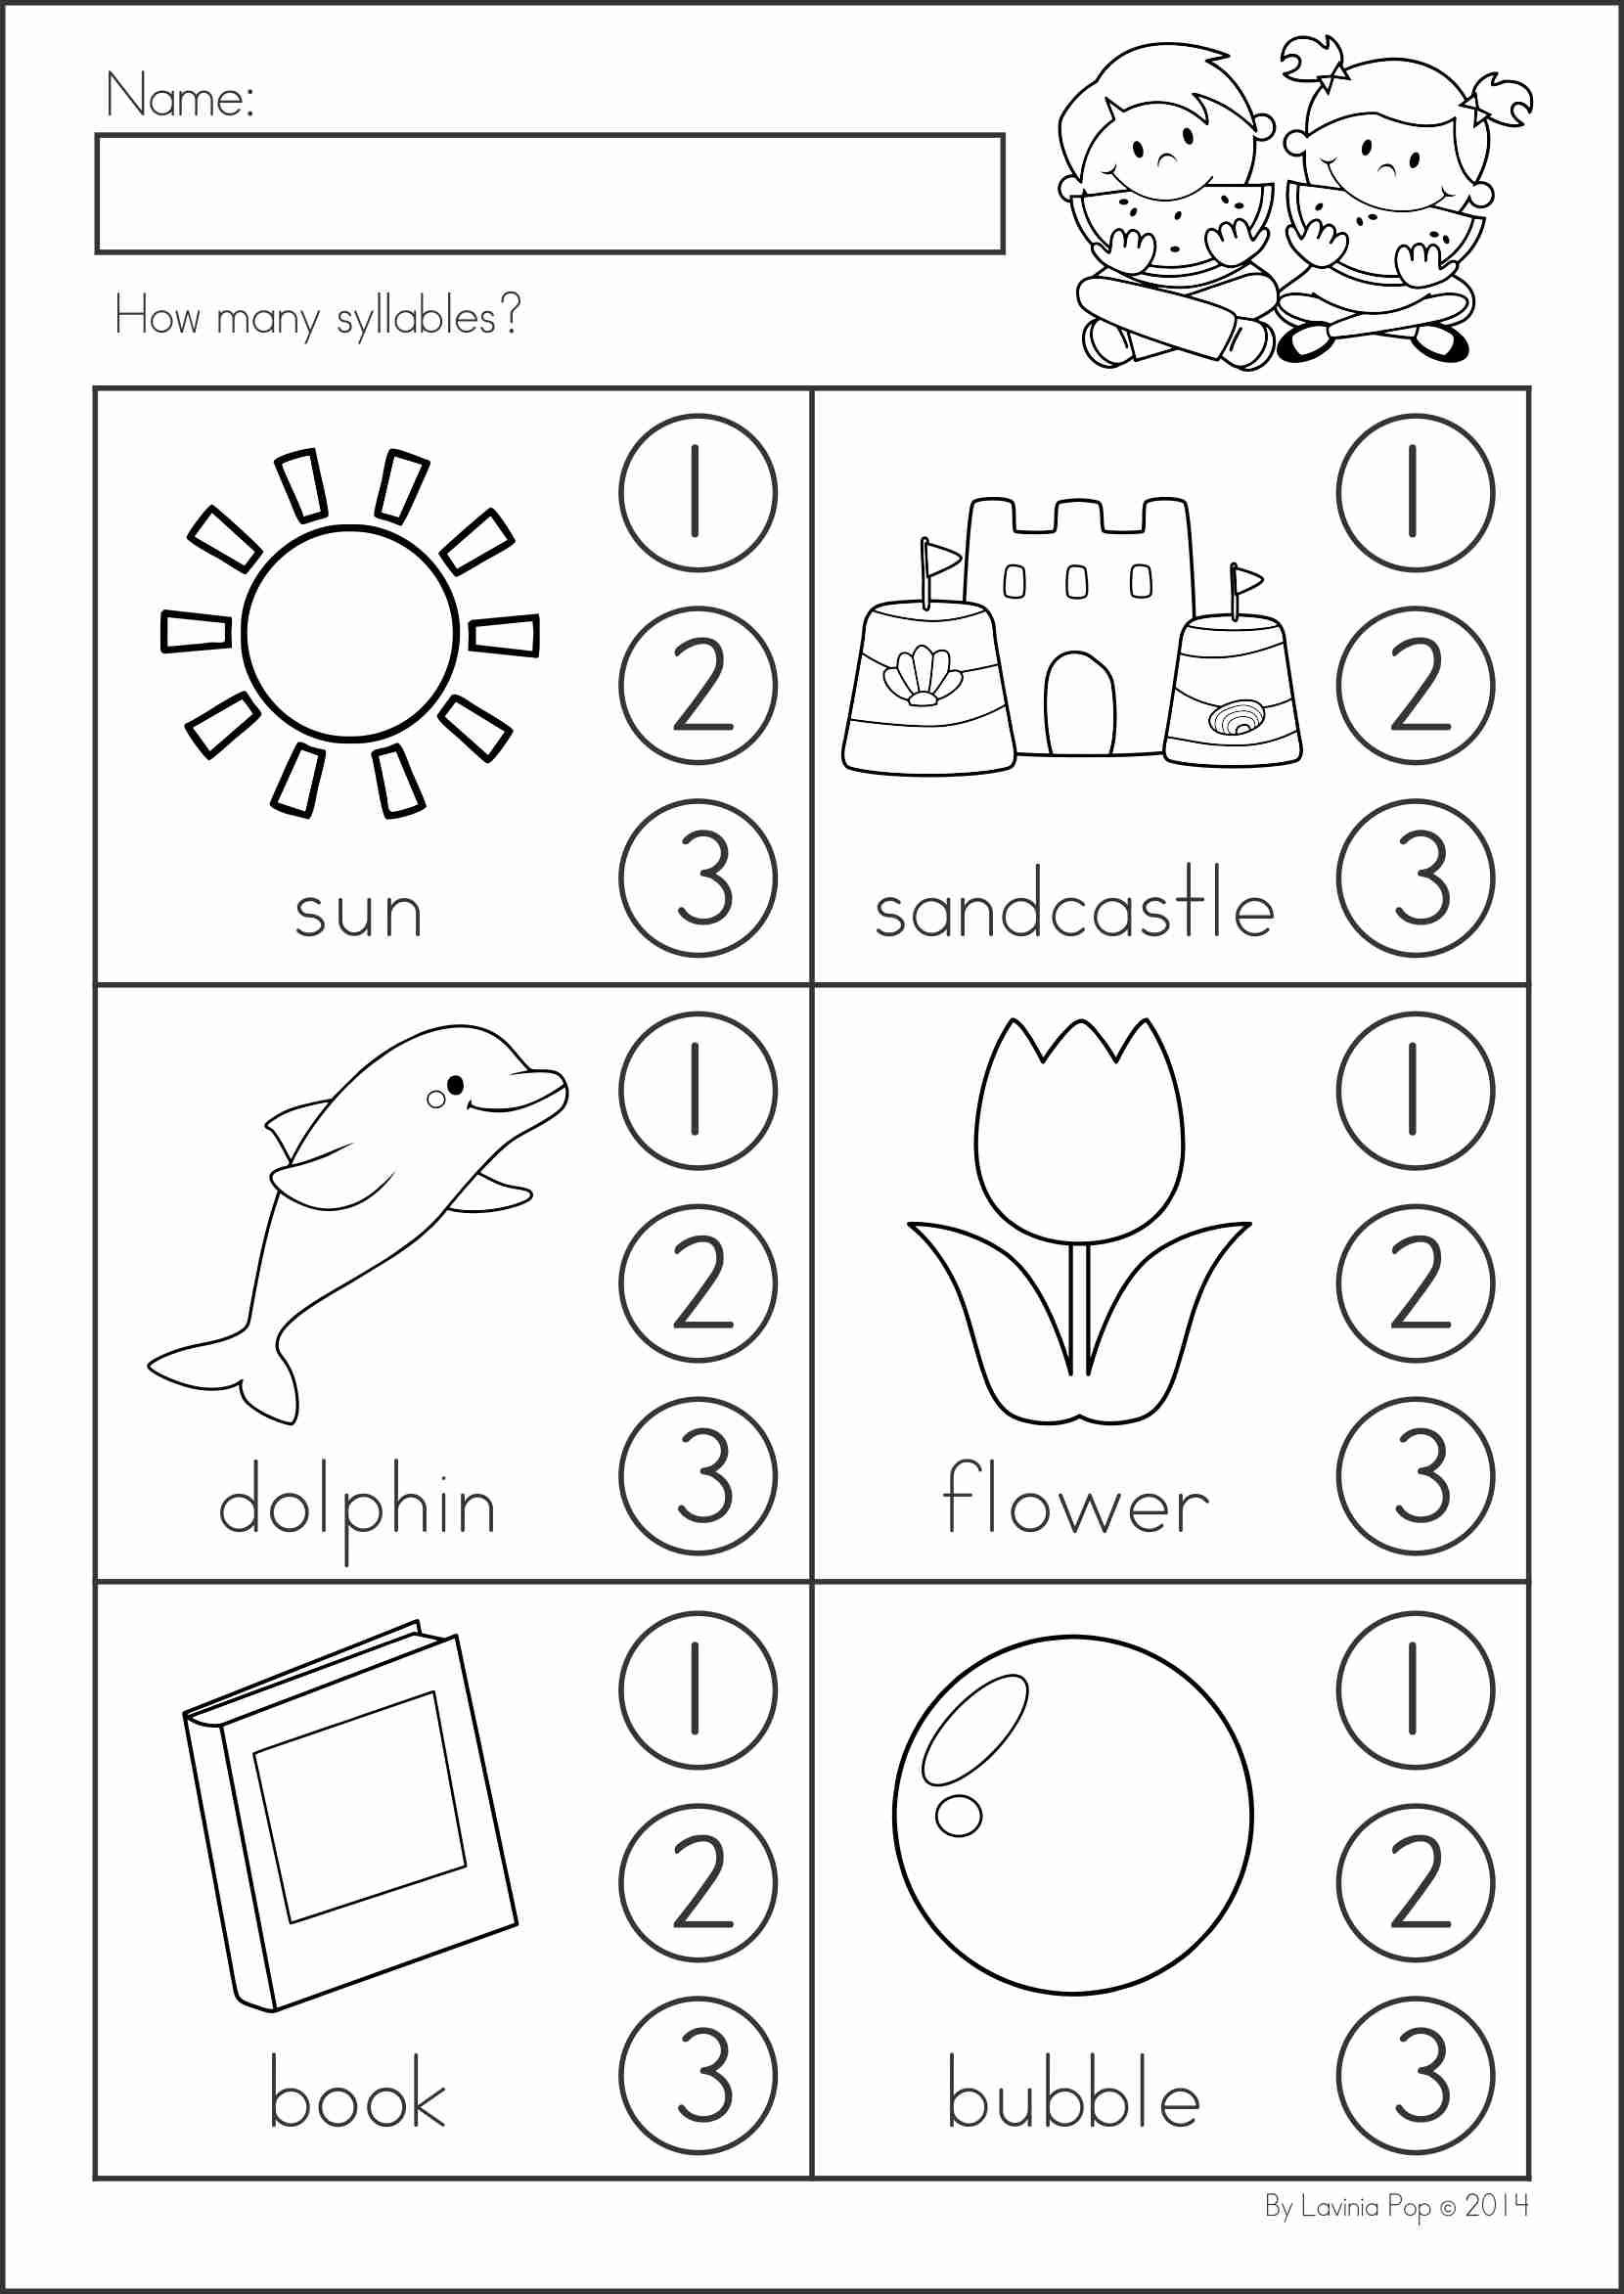 worksheet Syllable Worksheets For Kindergarten summer review literacy worksheets math and syllable kindergarten activities 104 pages a page from